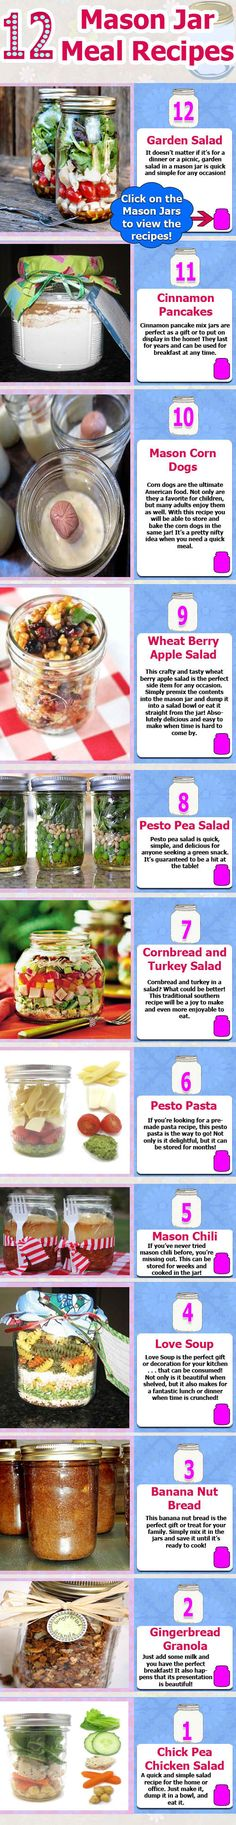 12 Mason Jar Meal Recipes - a few not real options for us clean eaters but you get to concept...